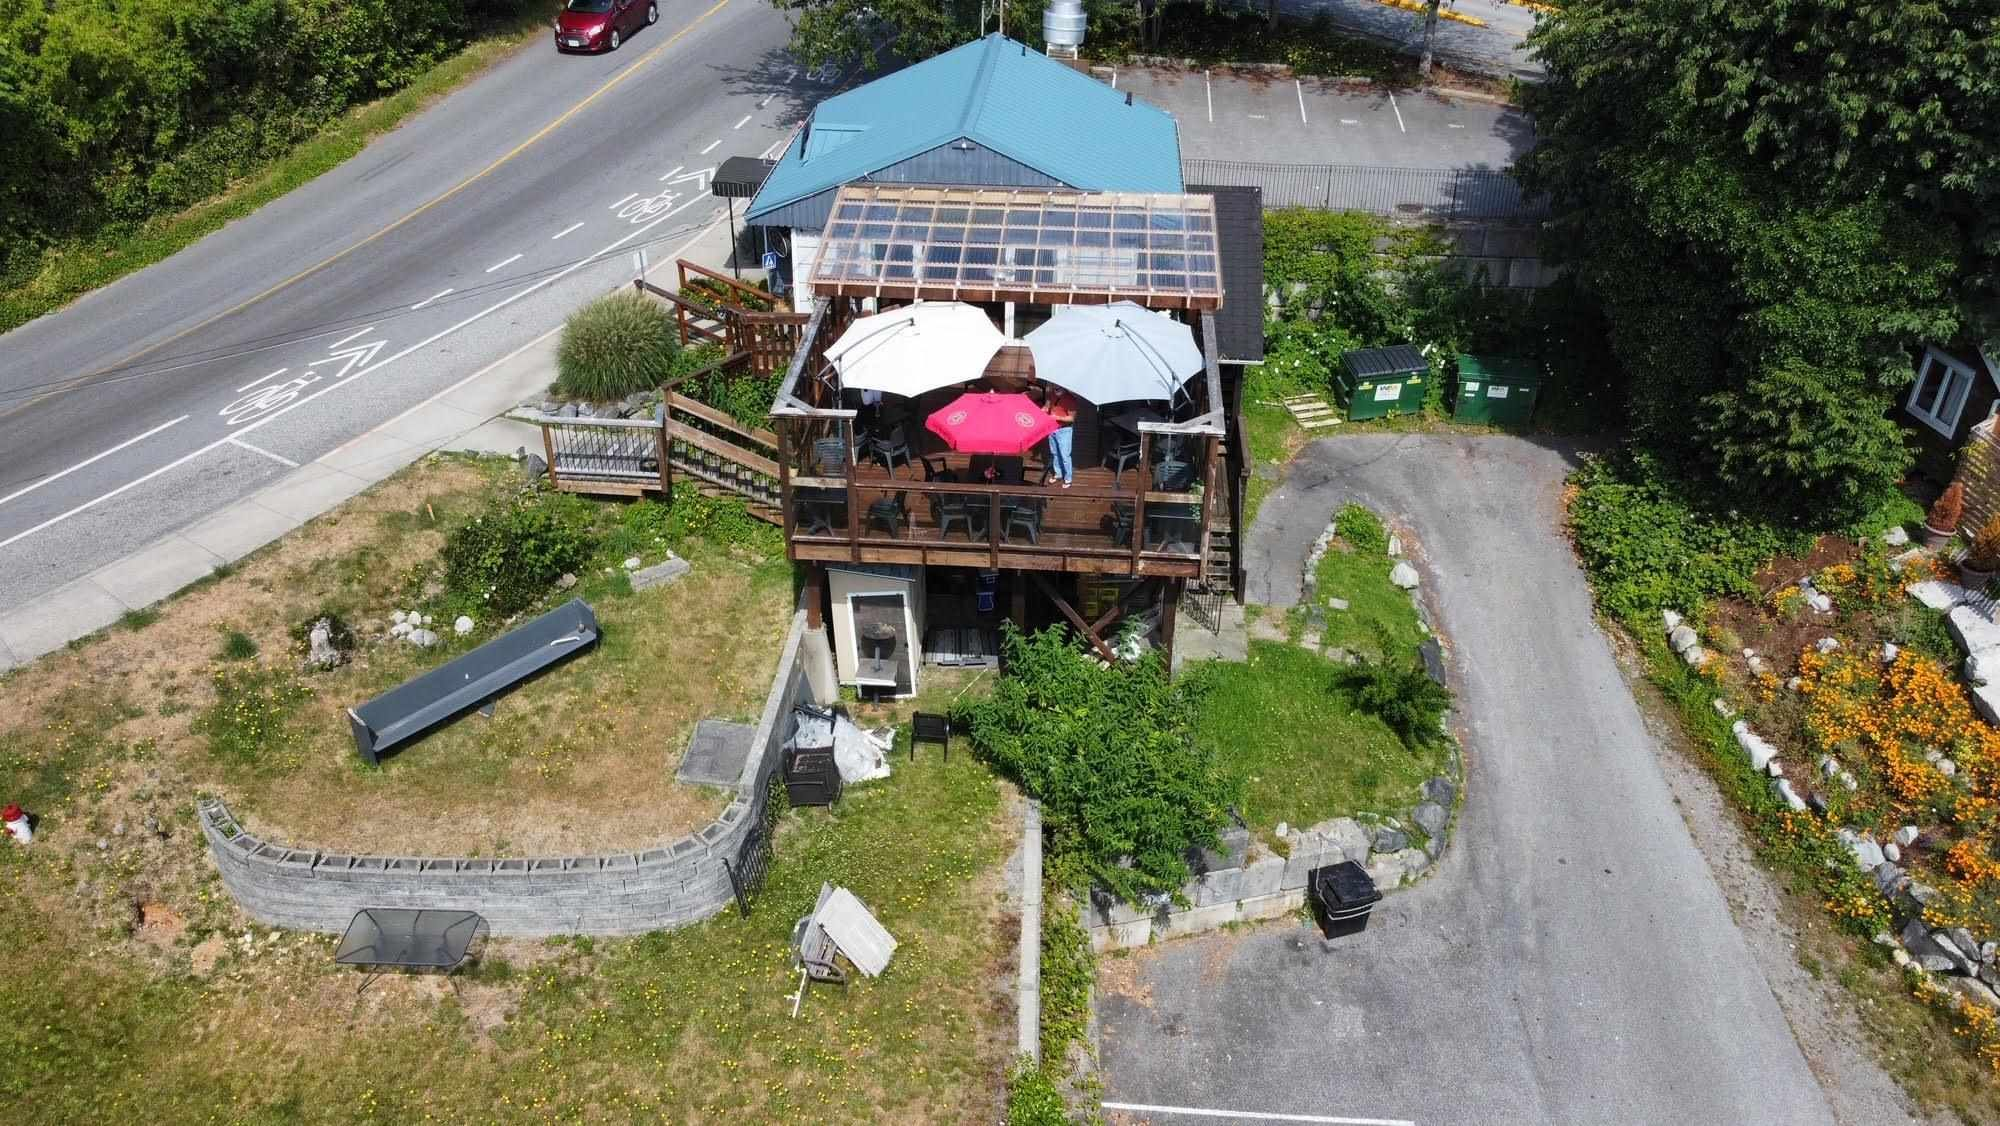 Main Photo: 546 GIBSONS Way in Gibsons: Gibsons & Area Retail for sale (Sunshine Coast)  : MLS®# C8038809